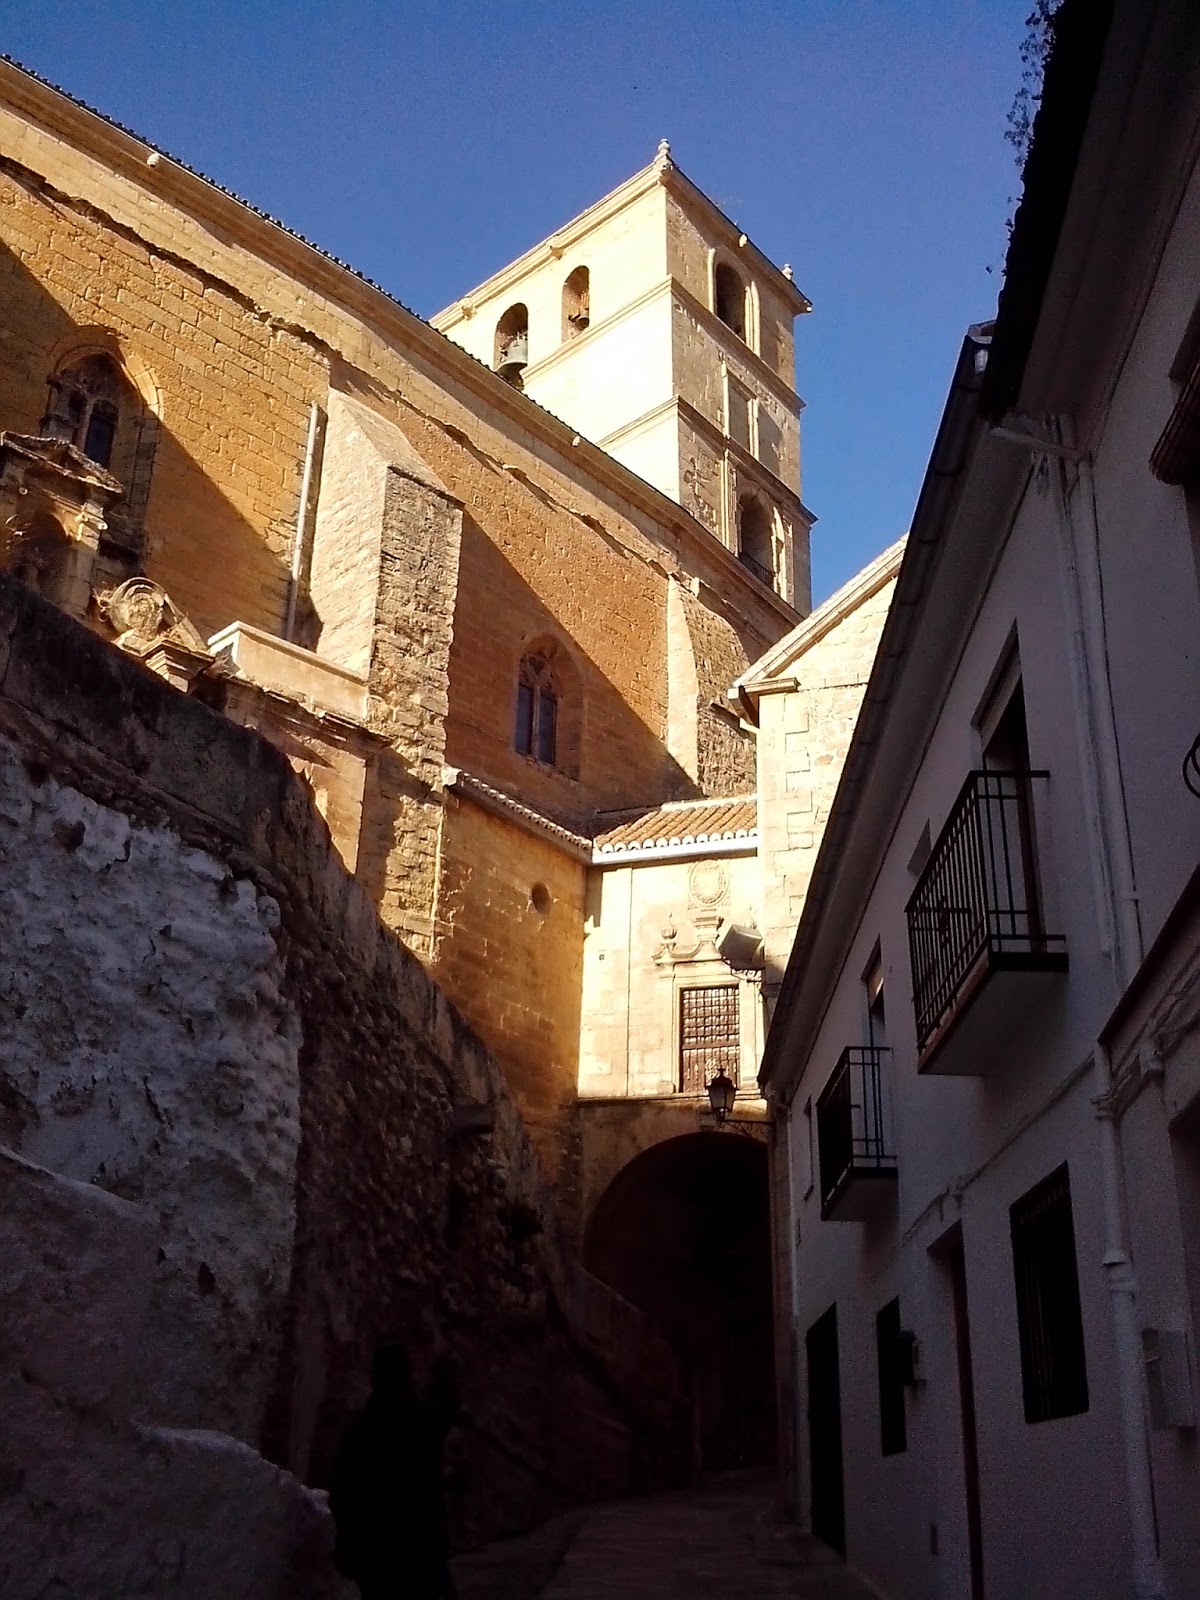 Enjoy Alhama de Granada, a medieval town our Andalucian SelfGuided Bike Tours